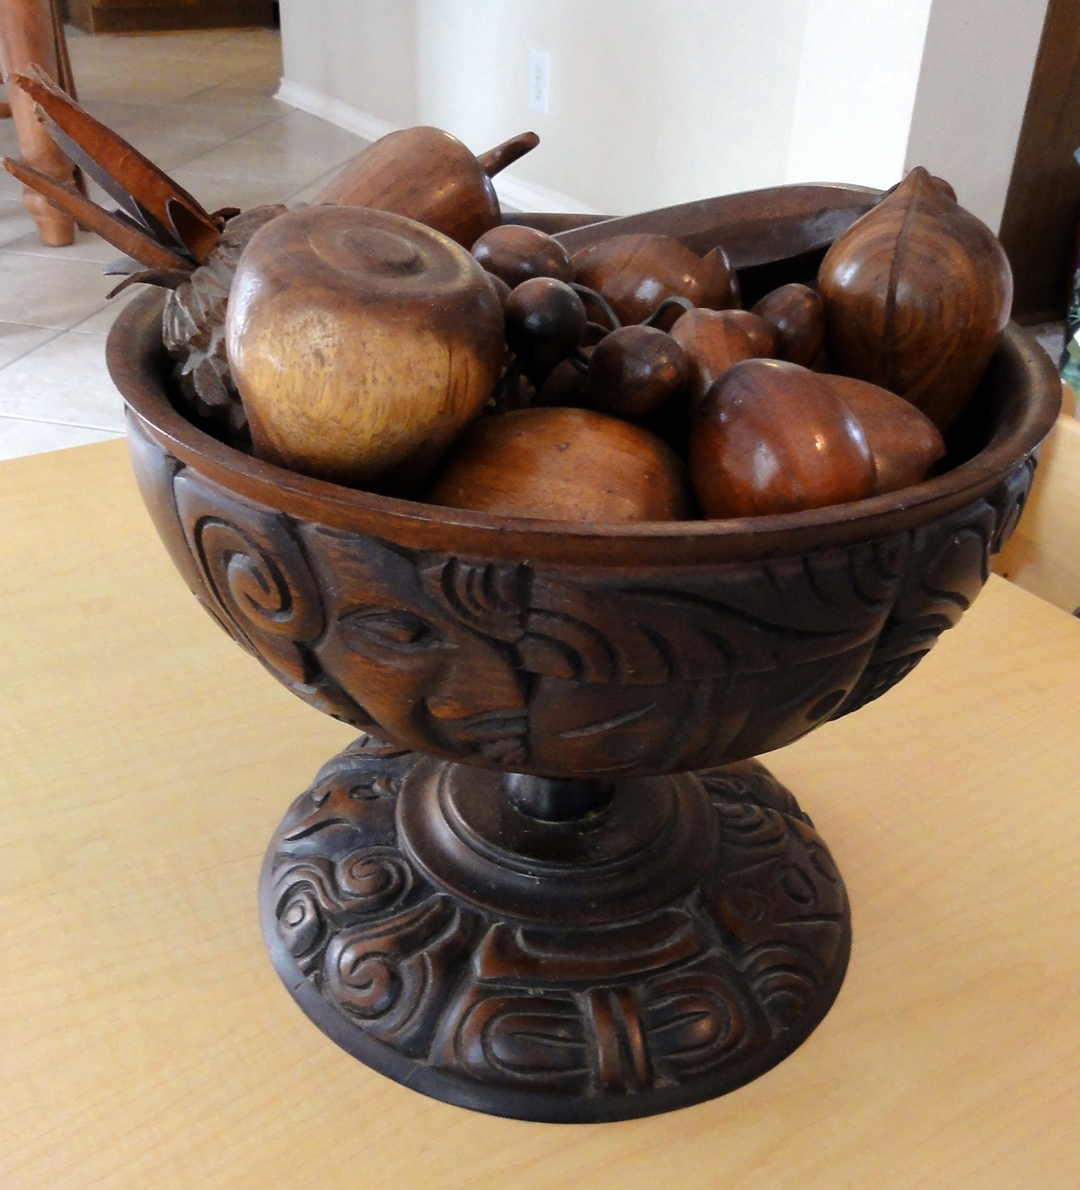 Fruit Bowl For Sale Moving Sale Pre Sale Honduran Carved Wooden Fruit And Bowl